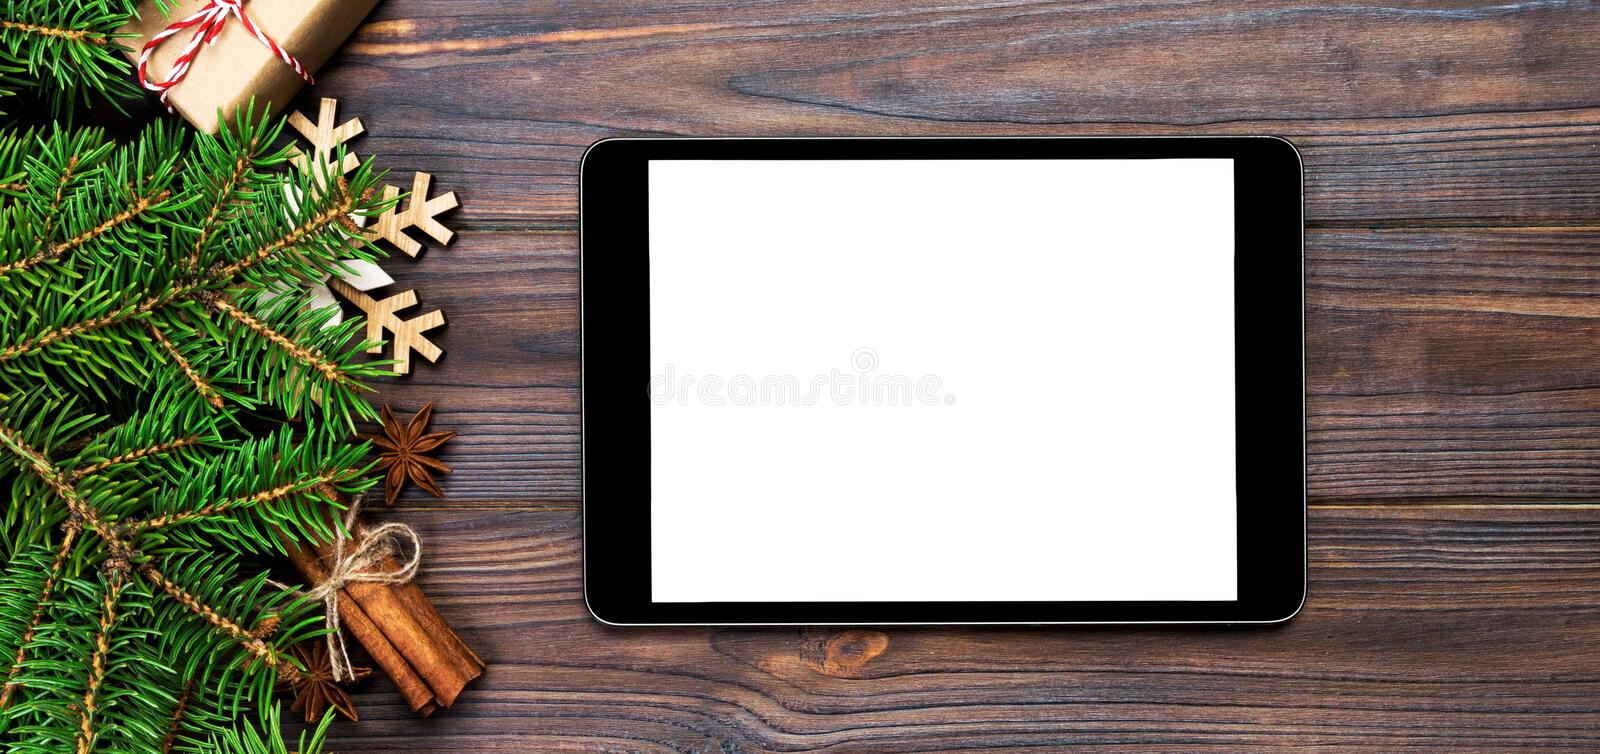 Digital tablet mock up with rustic Christmas wood background decorations for app presentation. top view banner with copy space.  royalty free stock photos